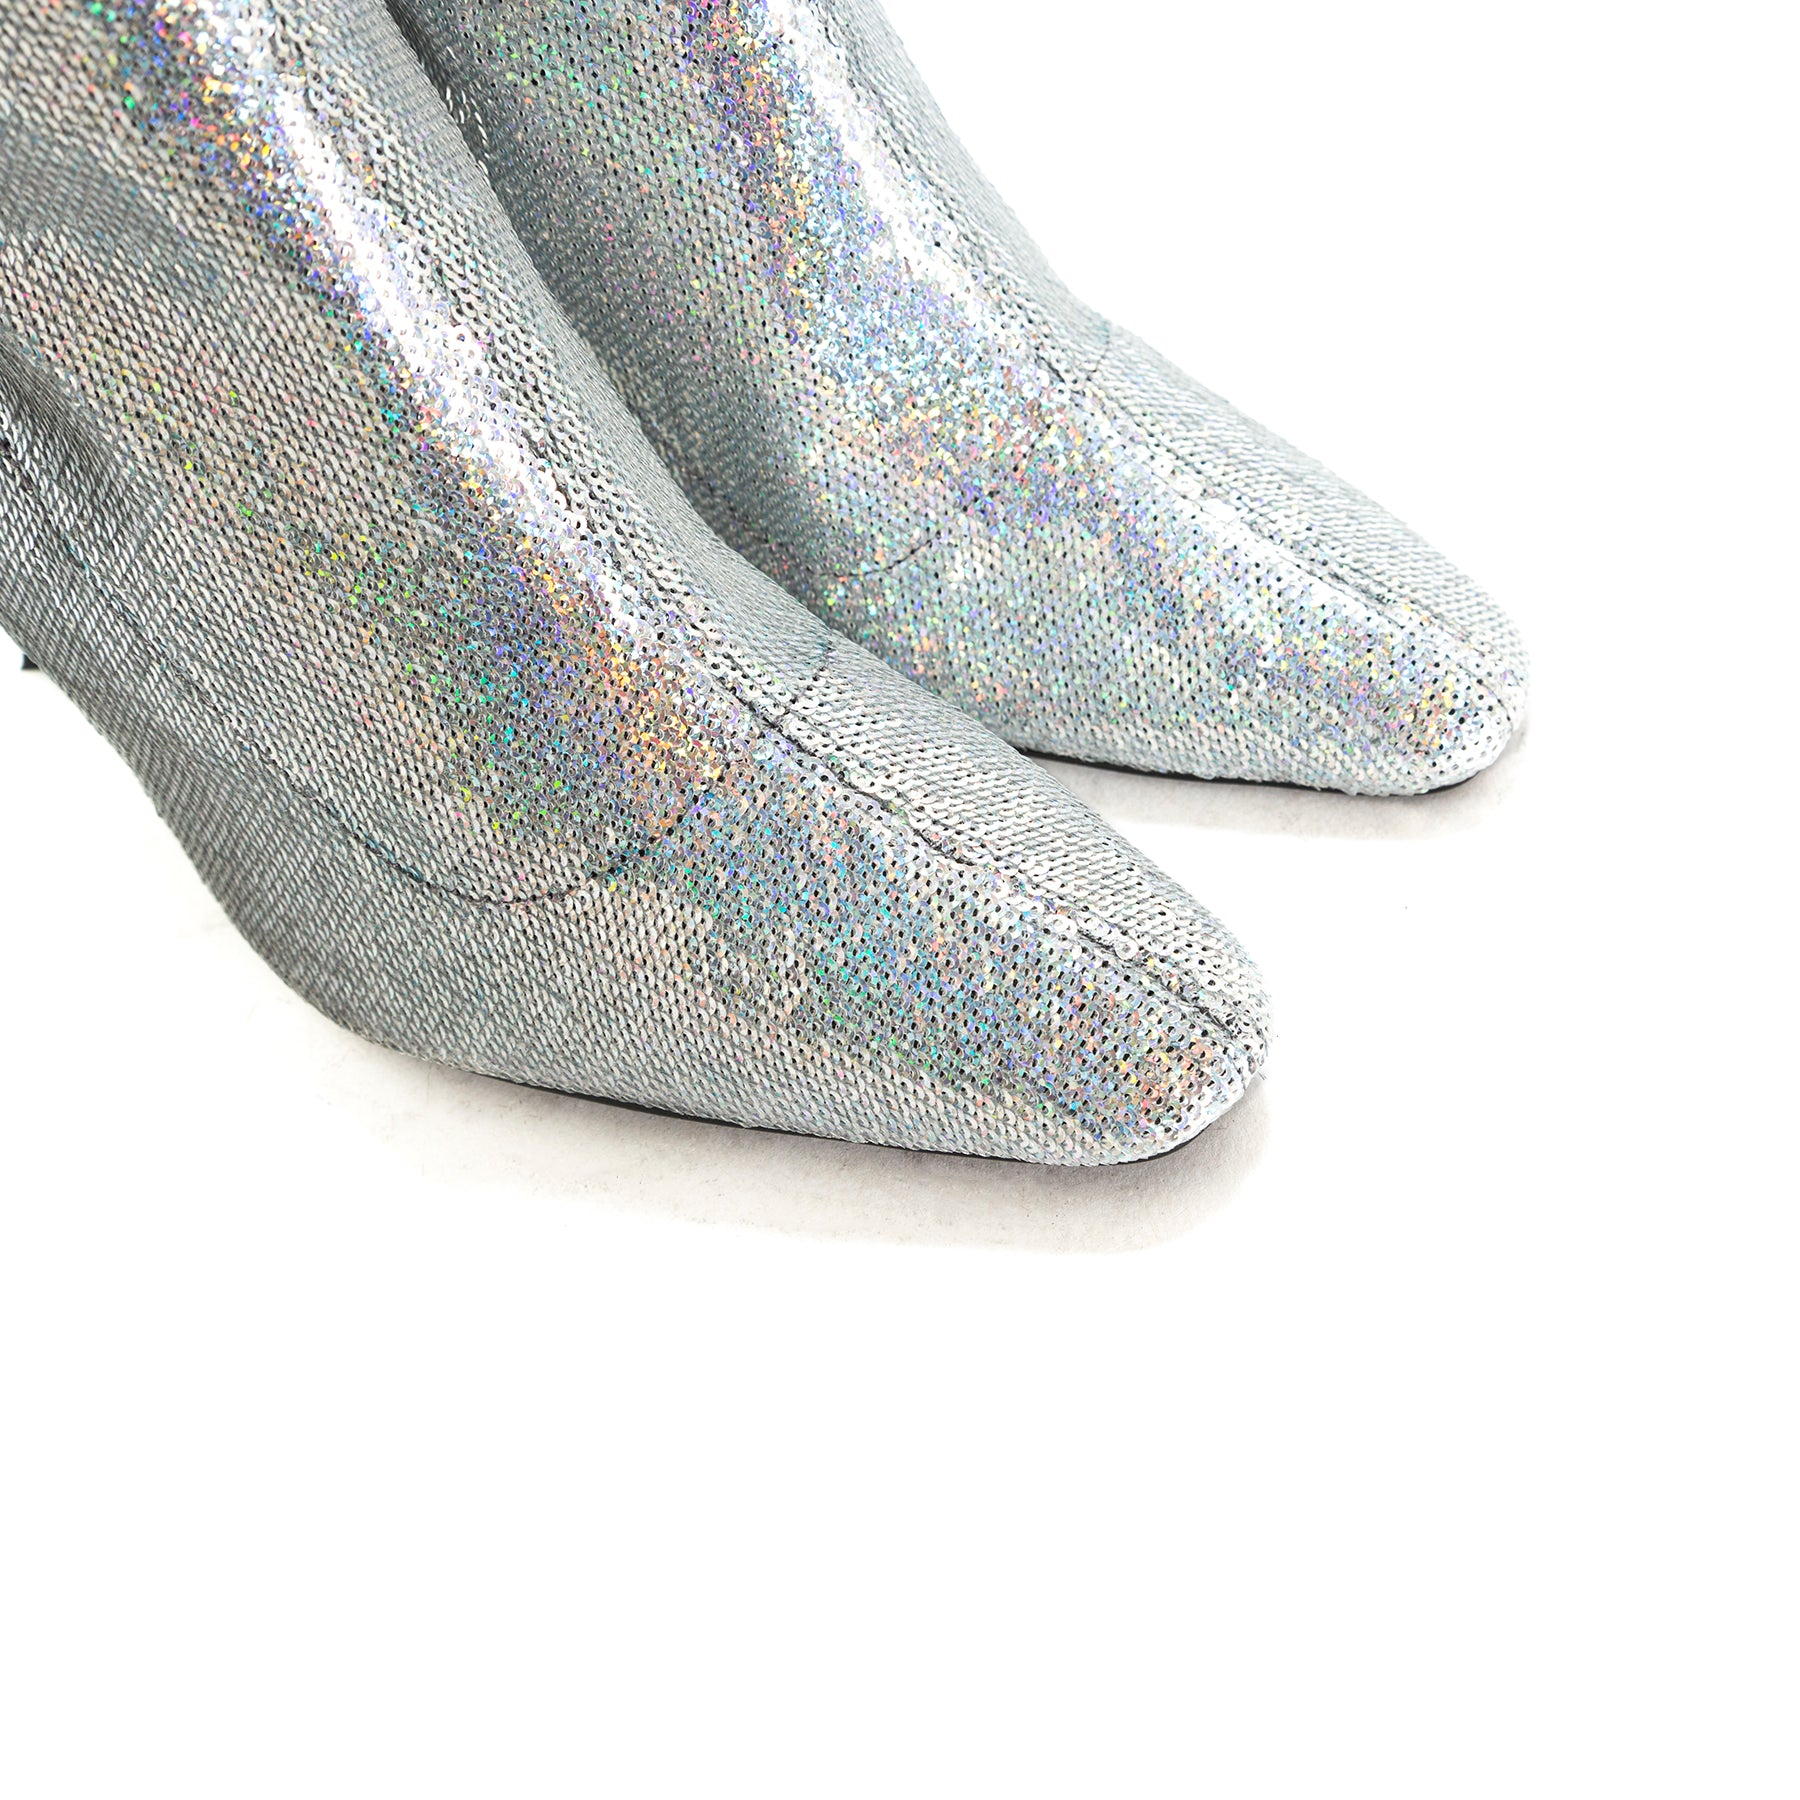 Sar Silver Fabric Booties